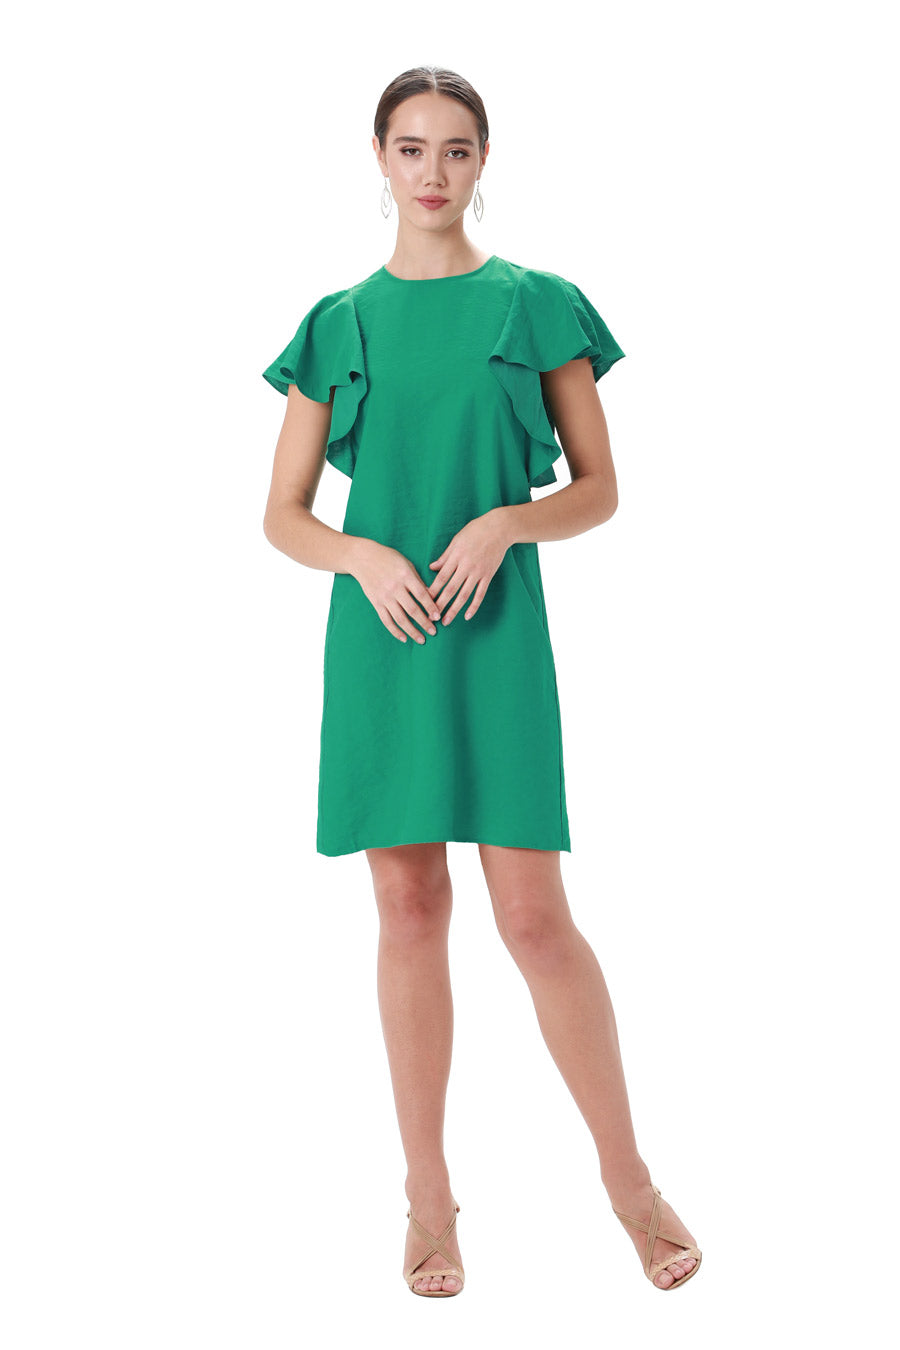 Green jewel neck ruffle dress